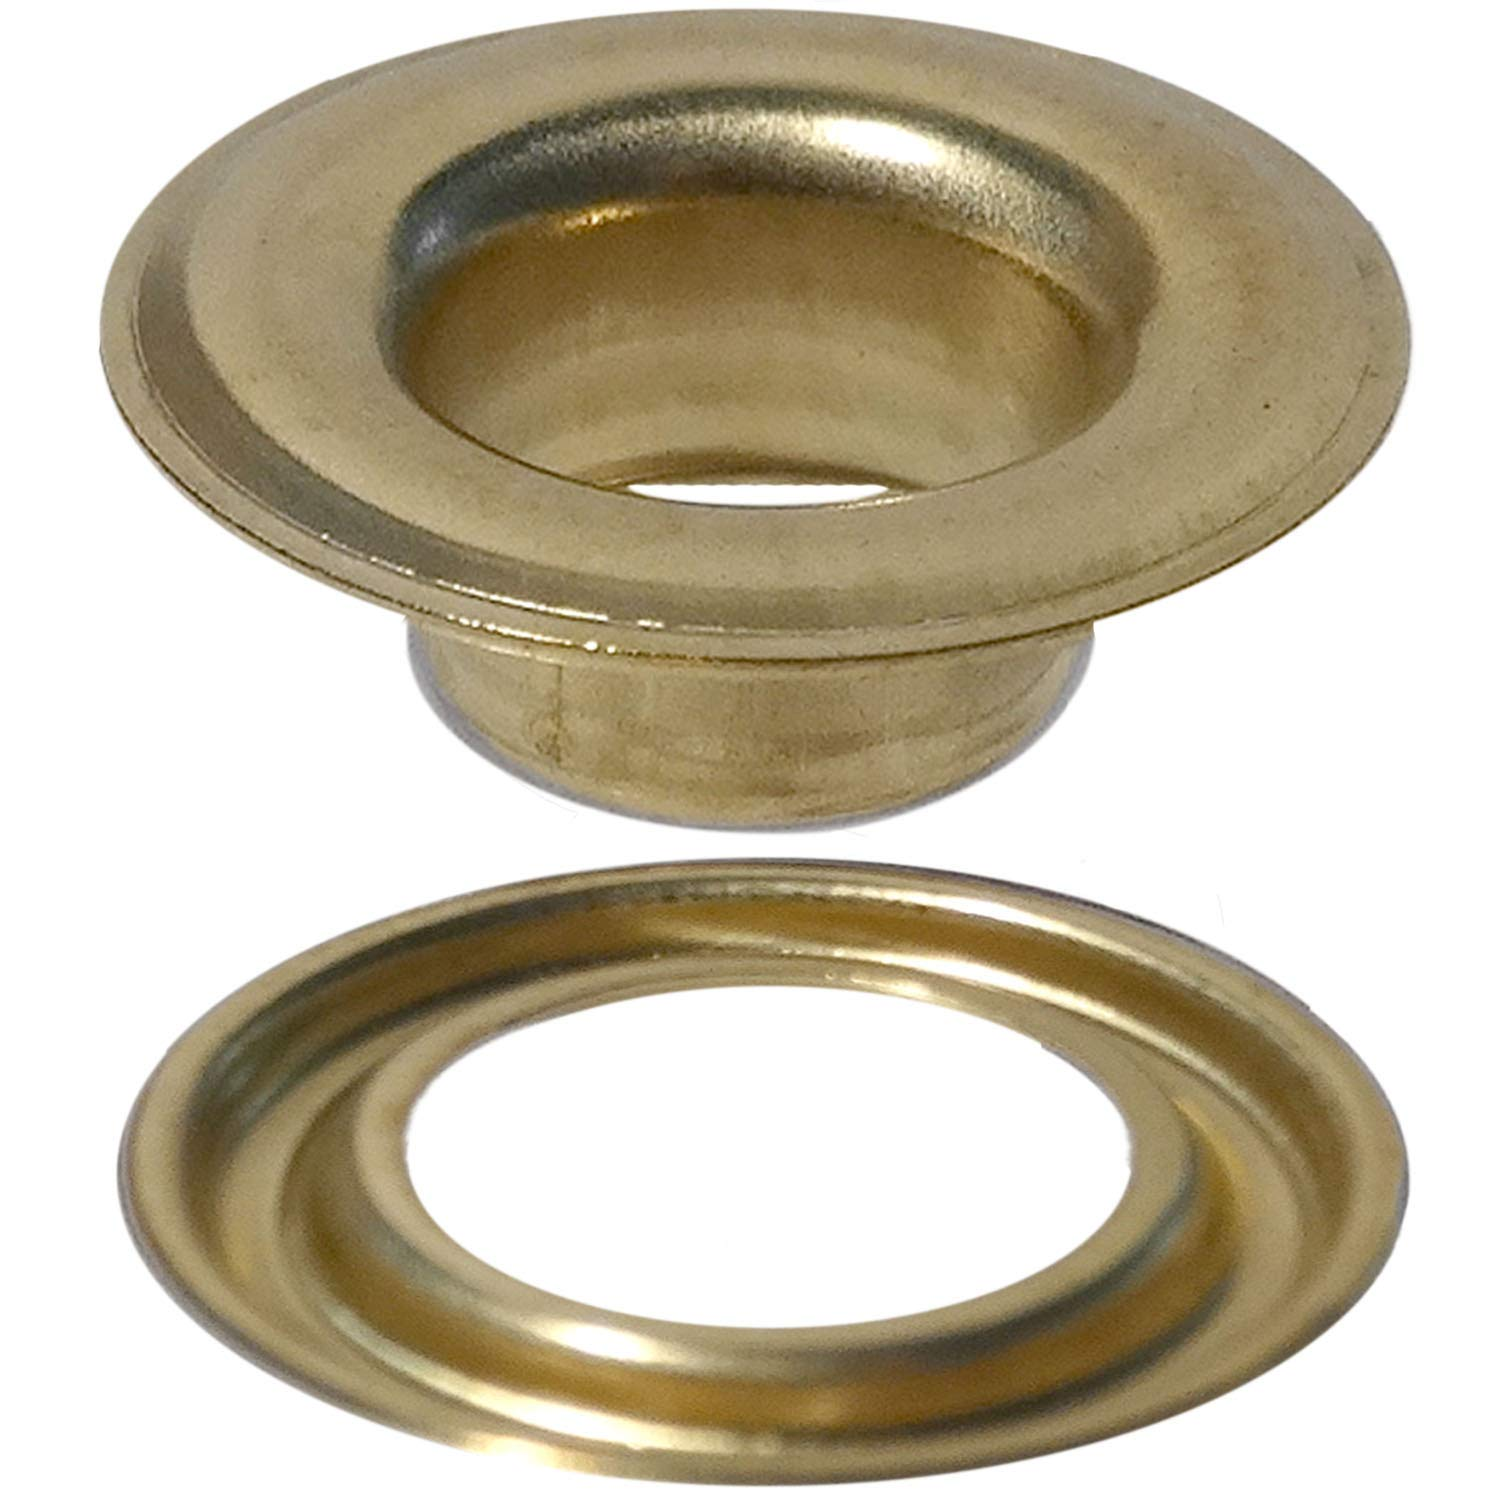 Stimpson Self-Piercing Grommet and Washer Brass Reliable, Durable, Heavy-Duty #3 Set (300 Pieces of Each)